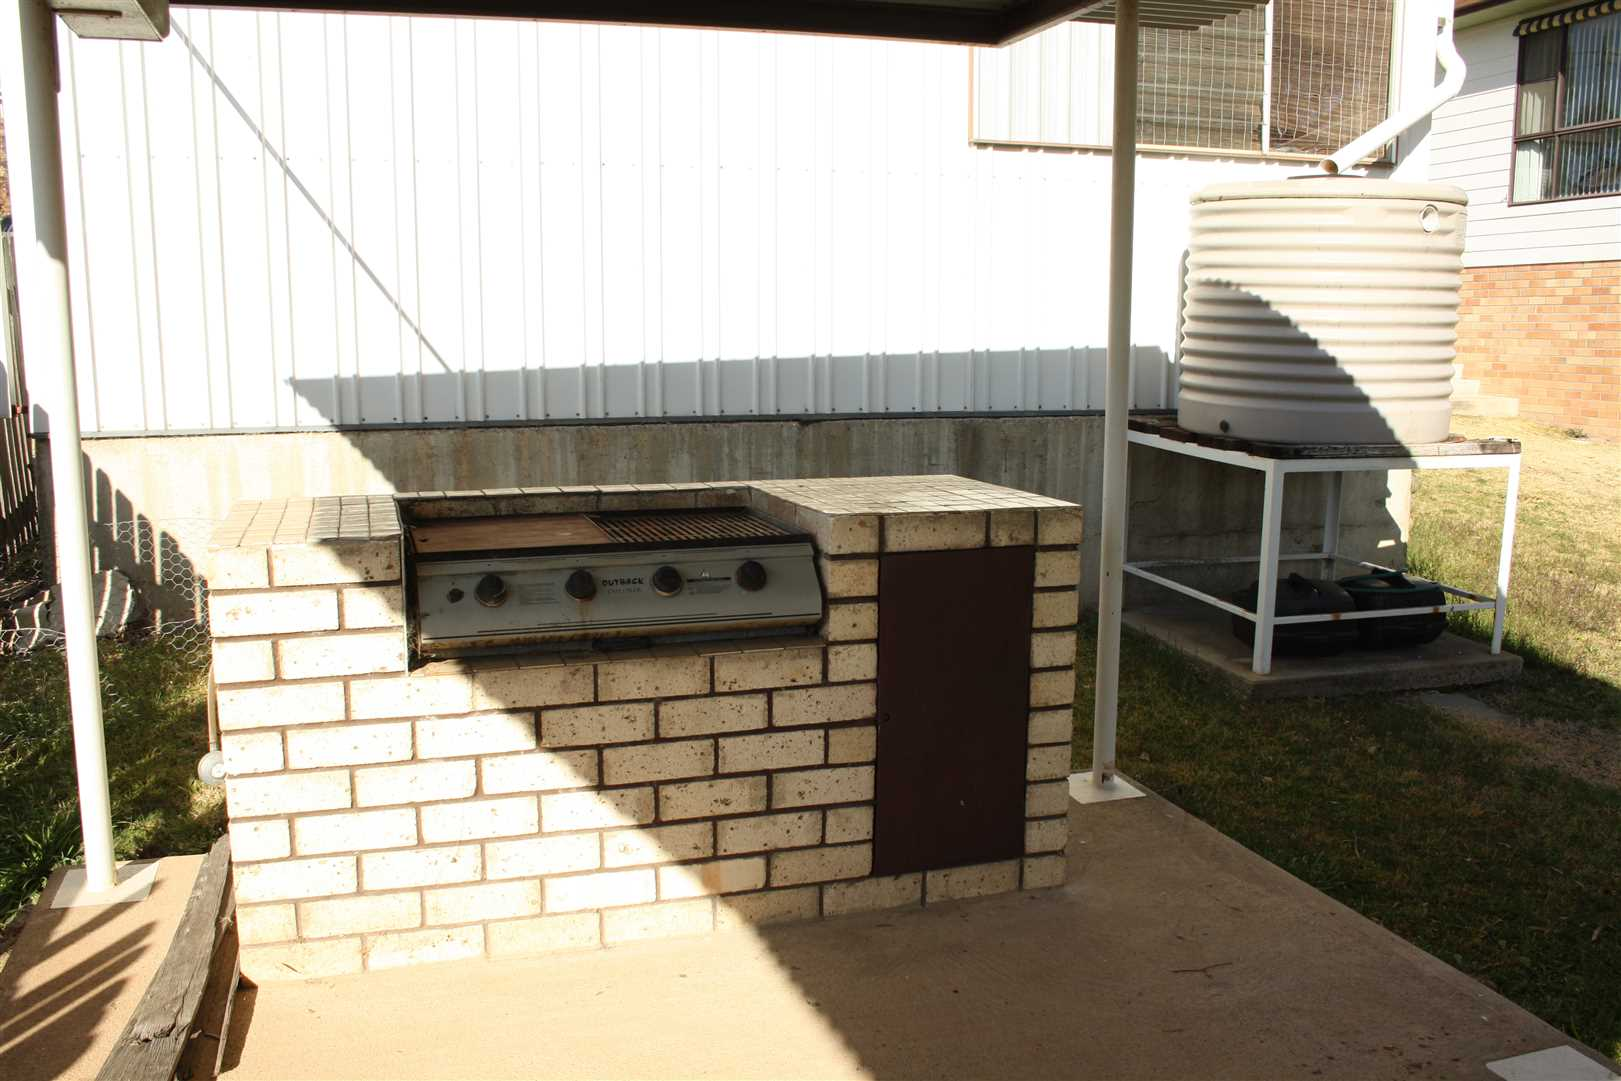 Covered BBQ Area & Water Tank